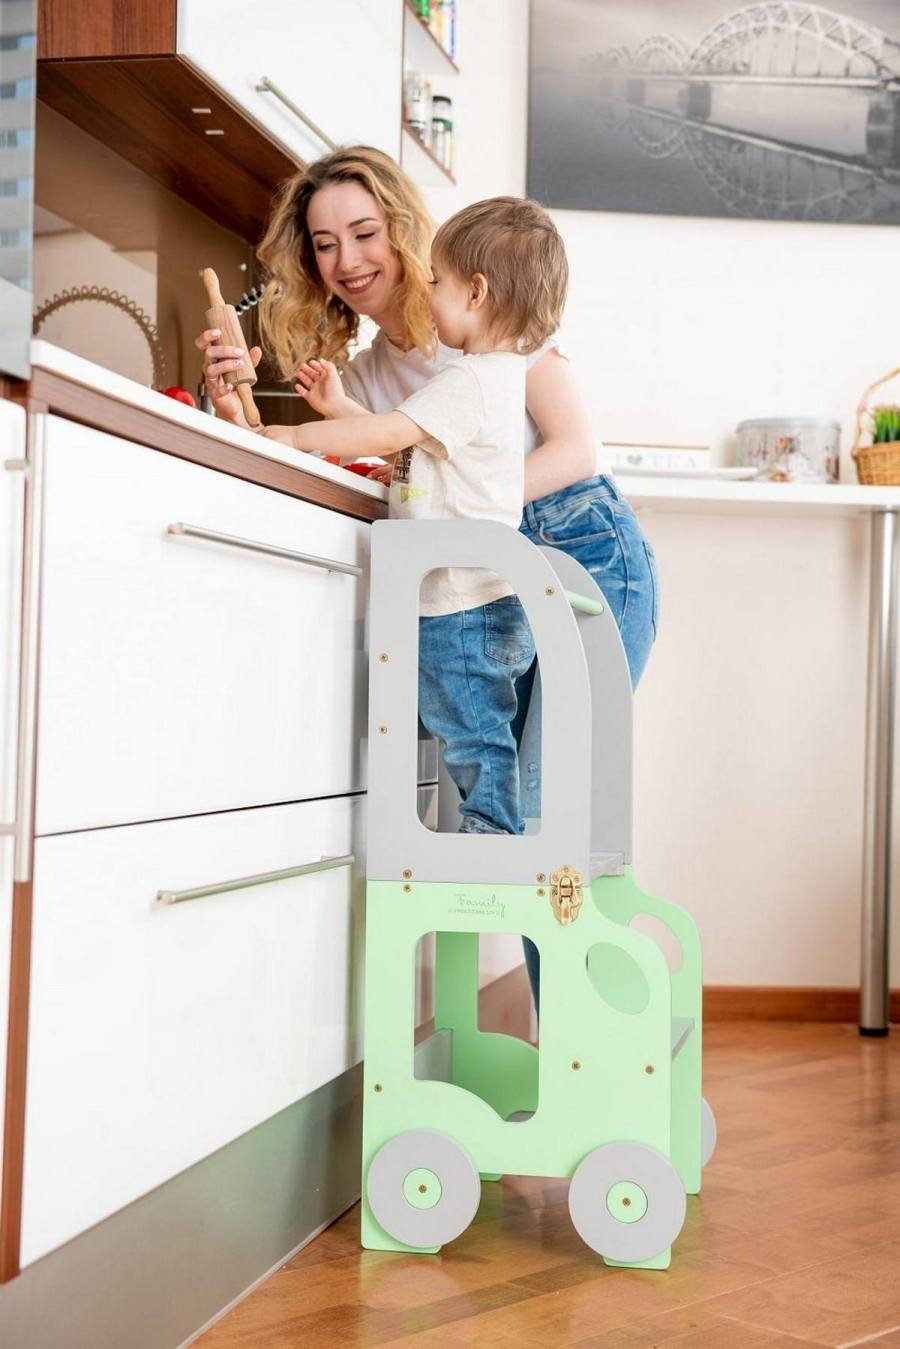 A learning tower (also known as a kitchen buddy) is a step stool designed to be used in the kitchen by toddlers. Unlike a regular step stool, a learning tower has safety features that make it safer for young children who make be subject to losing their balance.